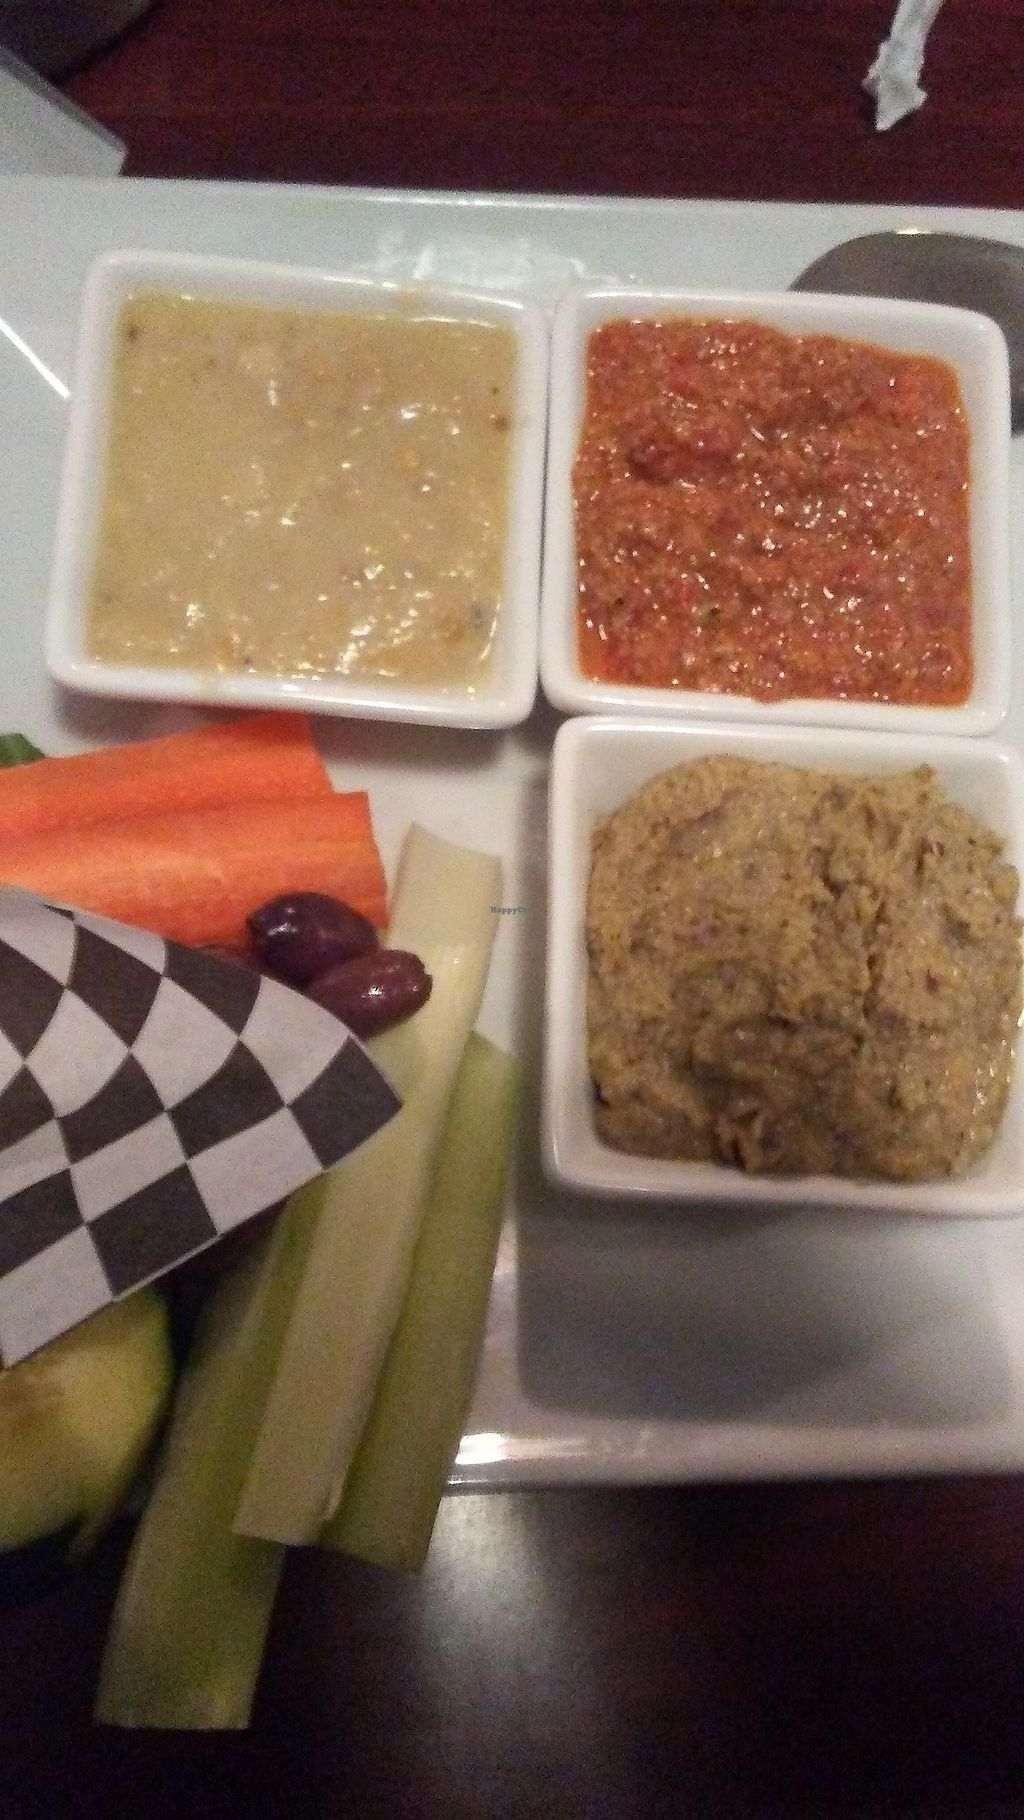 """Photo of Guernsey Kitchen  by <a href=""""/members/profile/Williamewq123ify"""">Williamewq123ify</a> <br/>Combo appetizer  Hummus Baba Ganoush Muhammara <br/> August 30, 2017  - <a href='/contact/abuse/image/75907/298991'>Report</a>"""